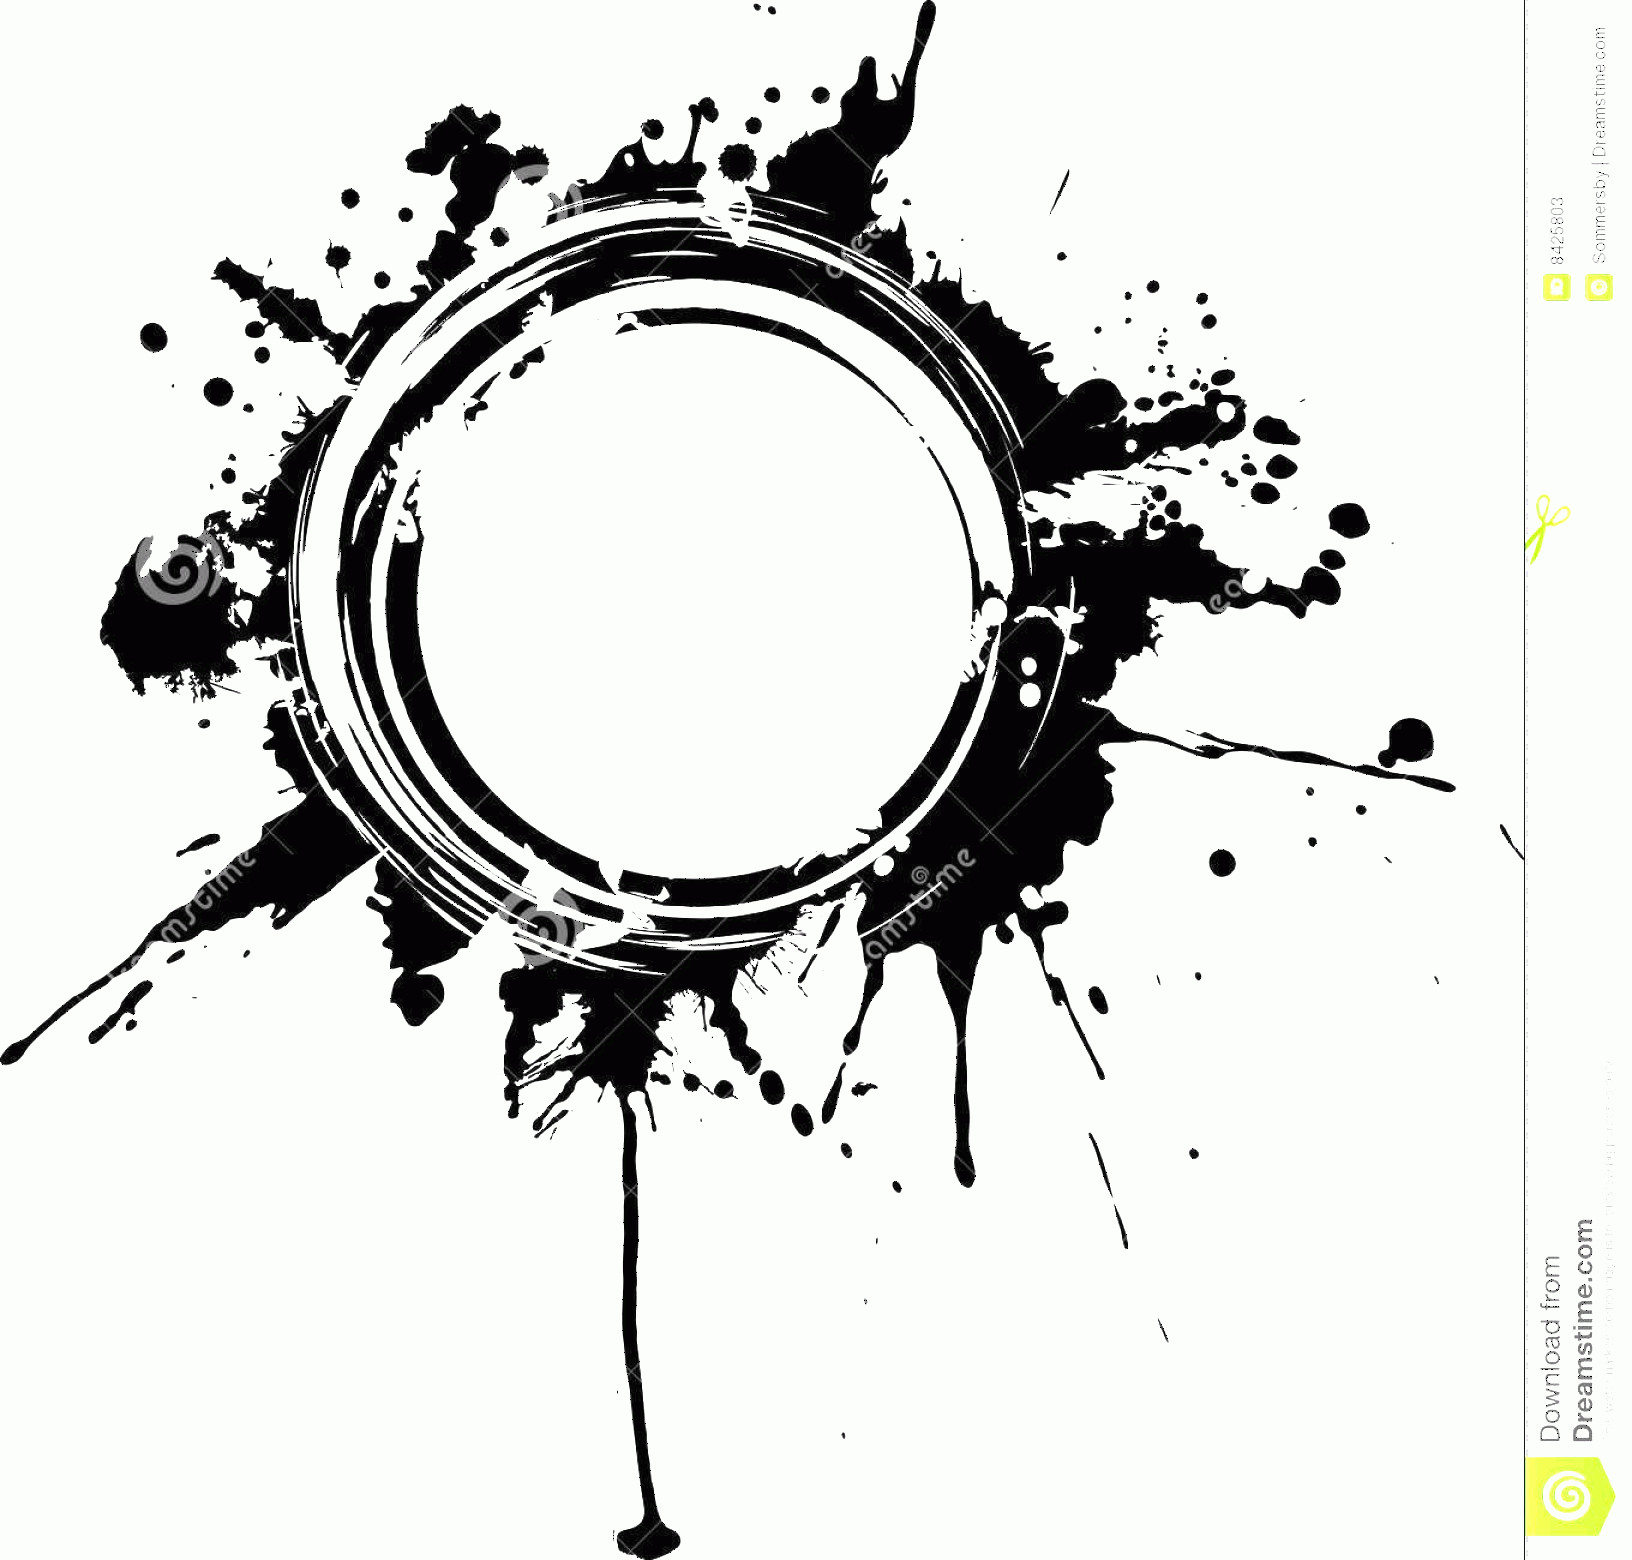 Distressed Border Circle Vector: Stock Photos Circular Grunge Frame Image